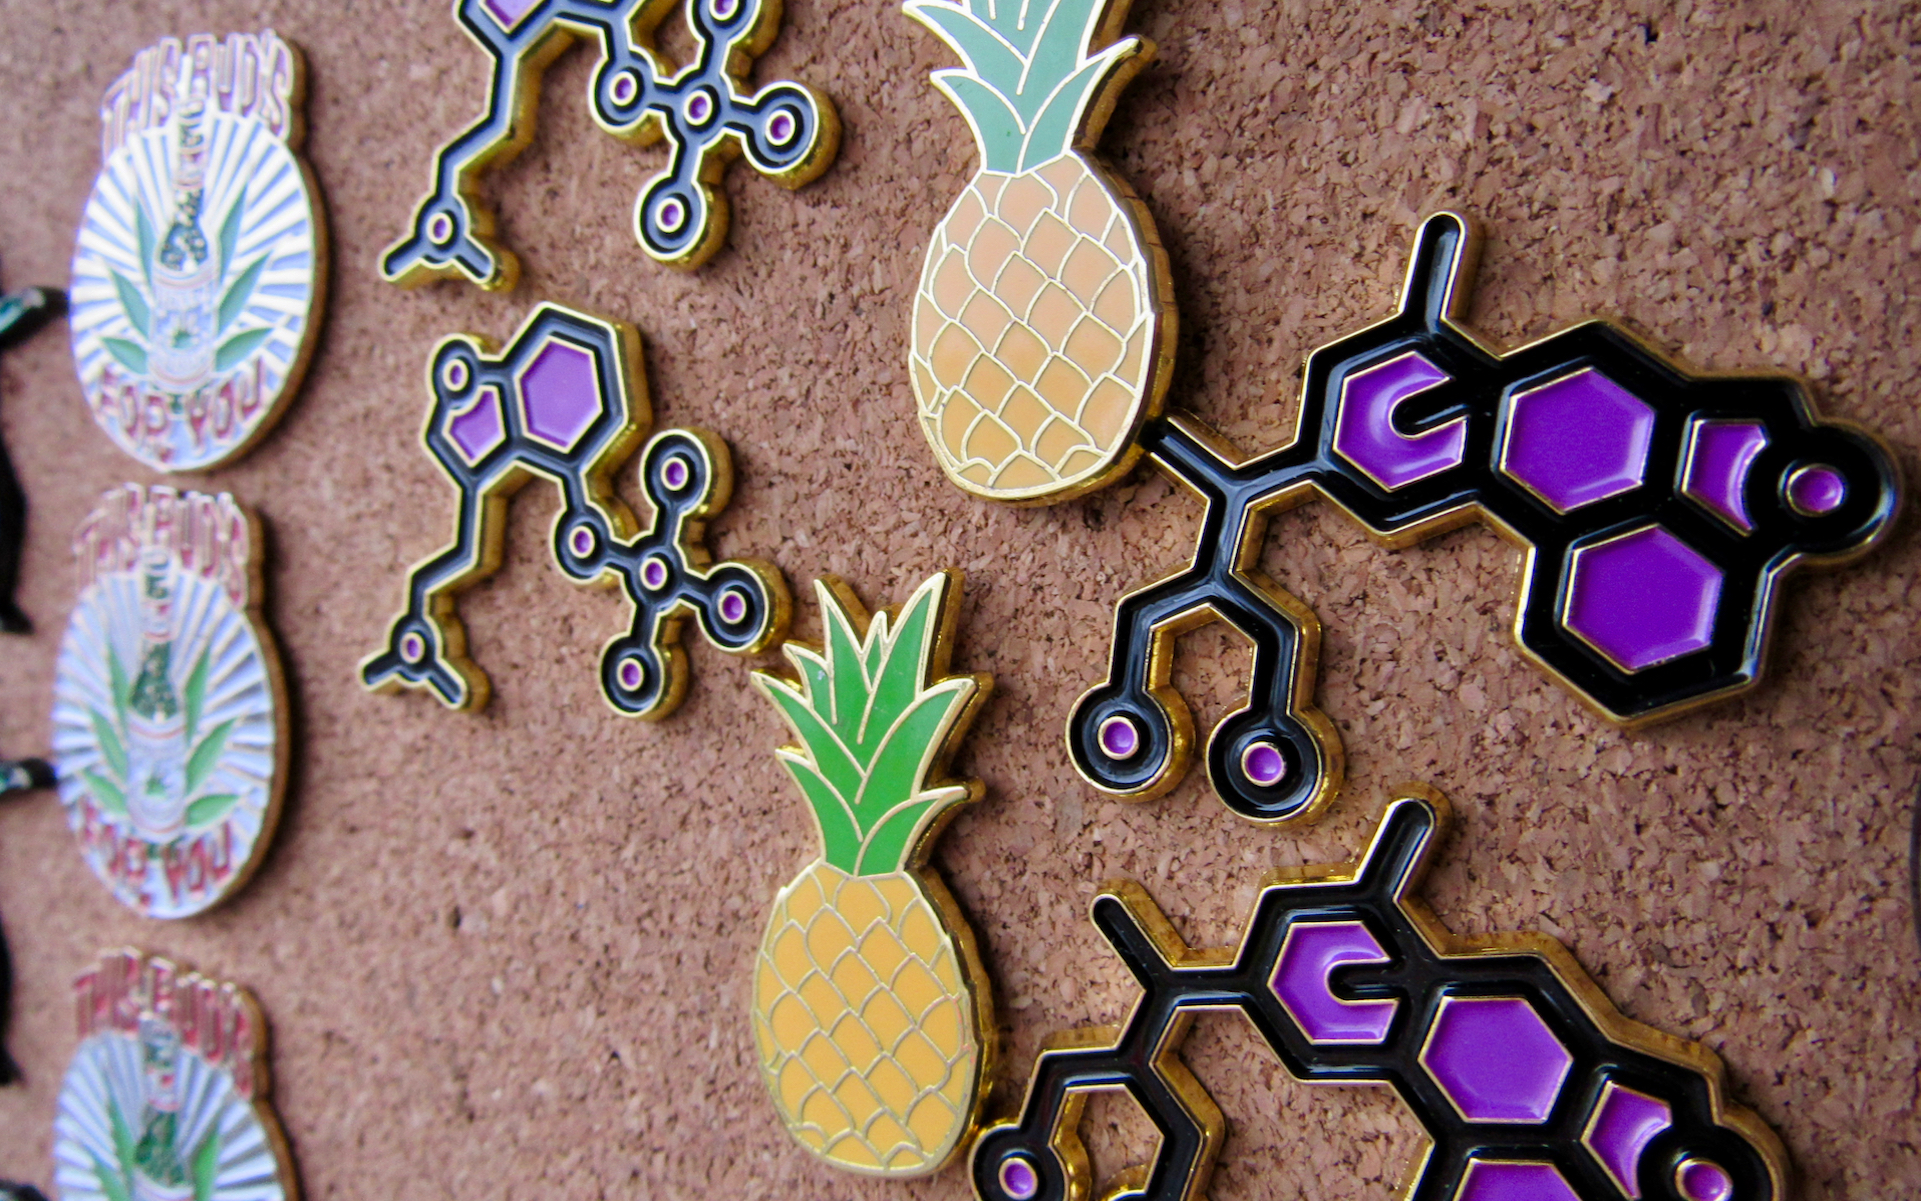 Hat pins in the shape of THC molecules and pineapples sold for $15 each. (David Downs/Leafly)